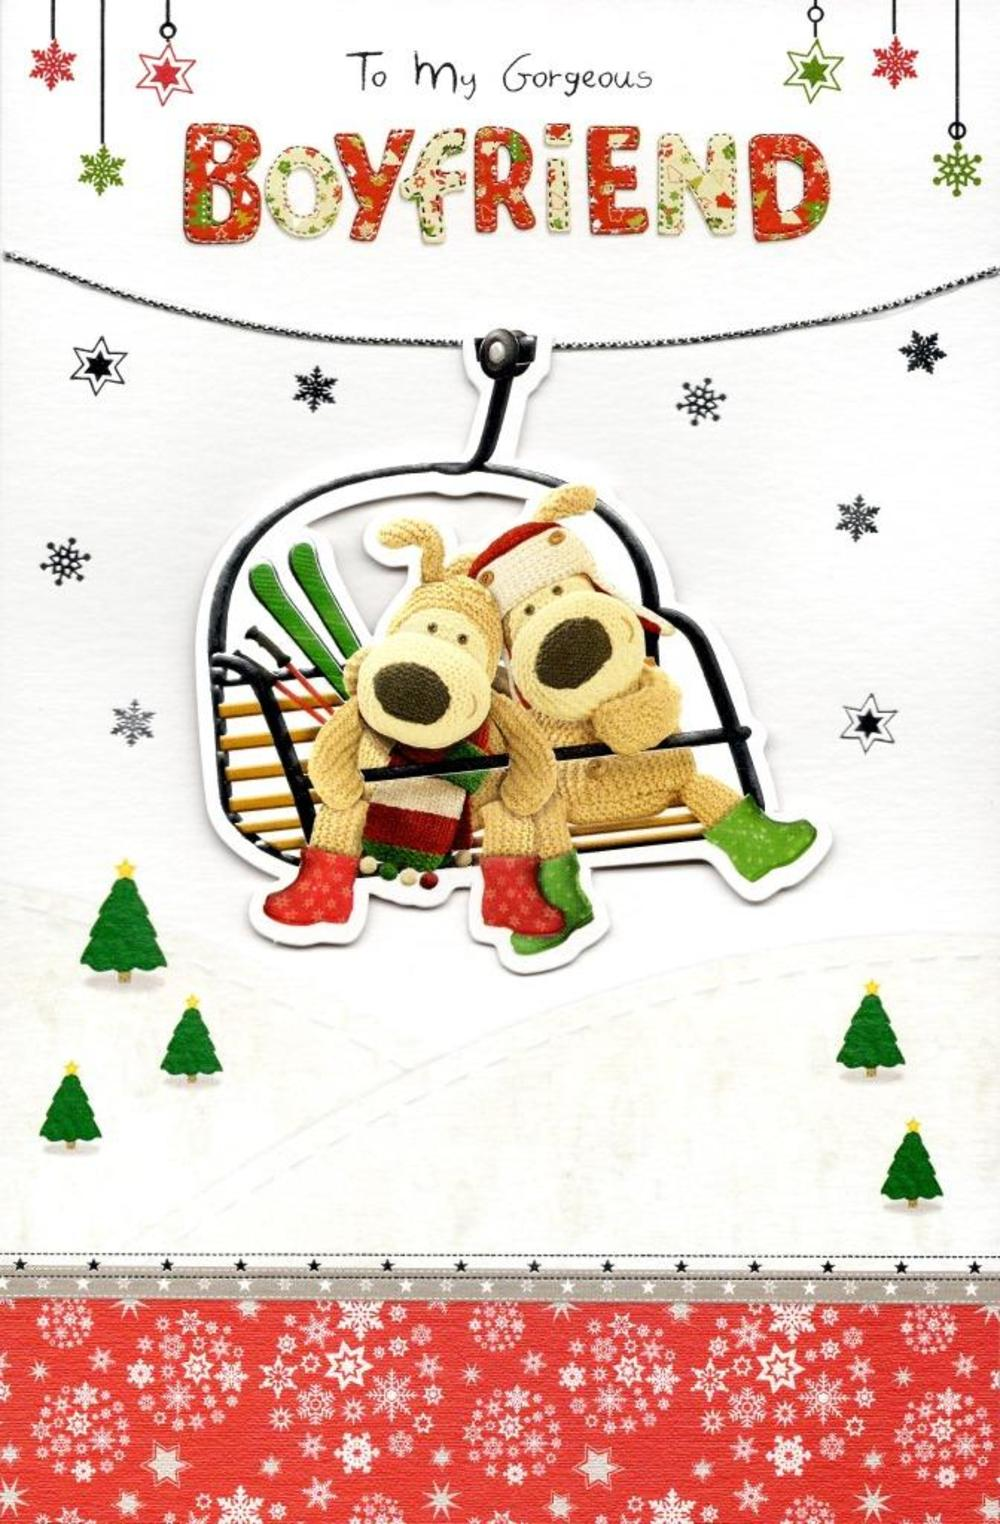 boofle gorgeous boyfriend christmas greeting card - Boyfriend Christmas Card